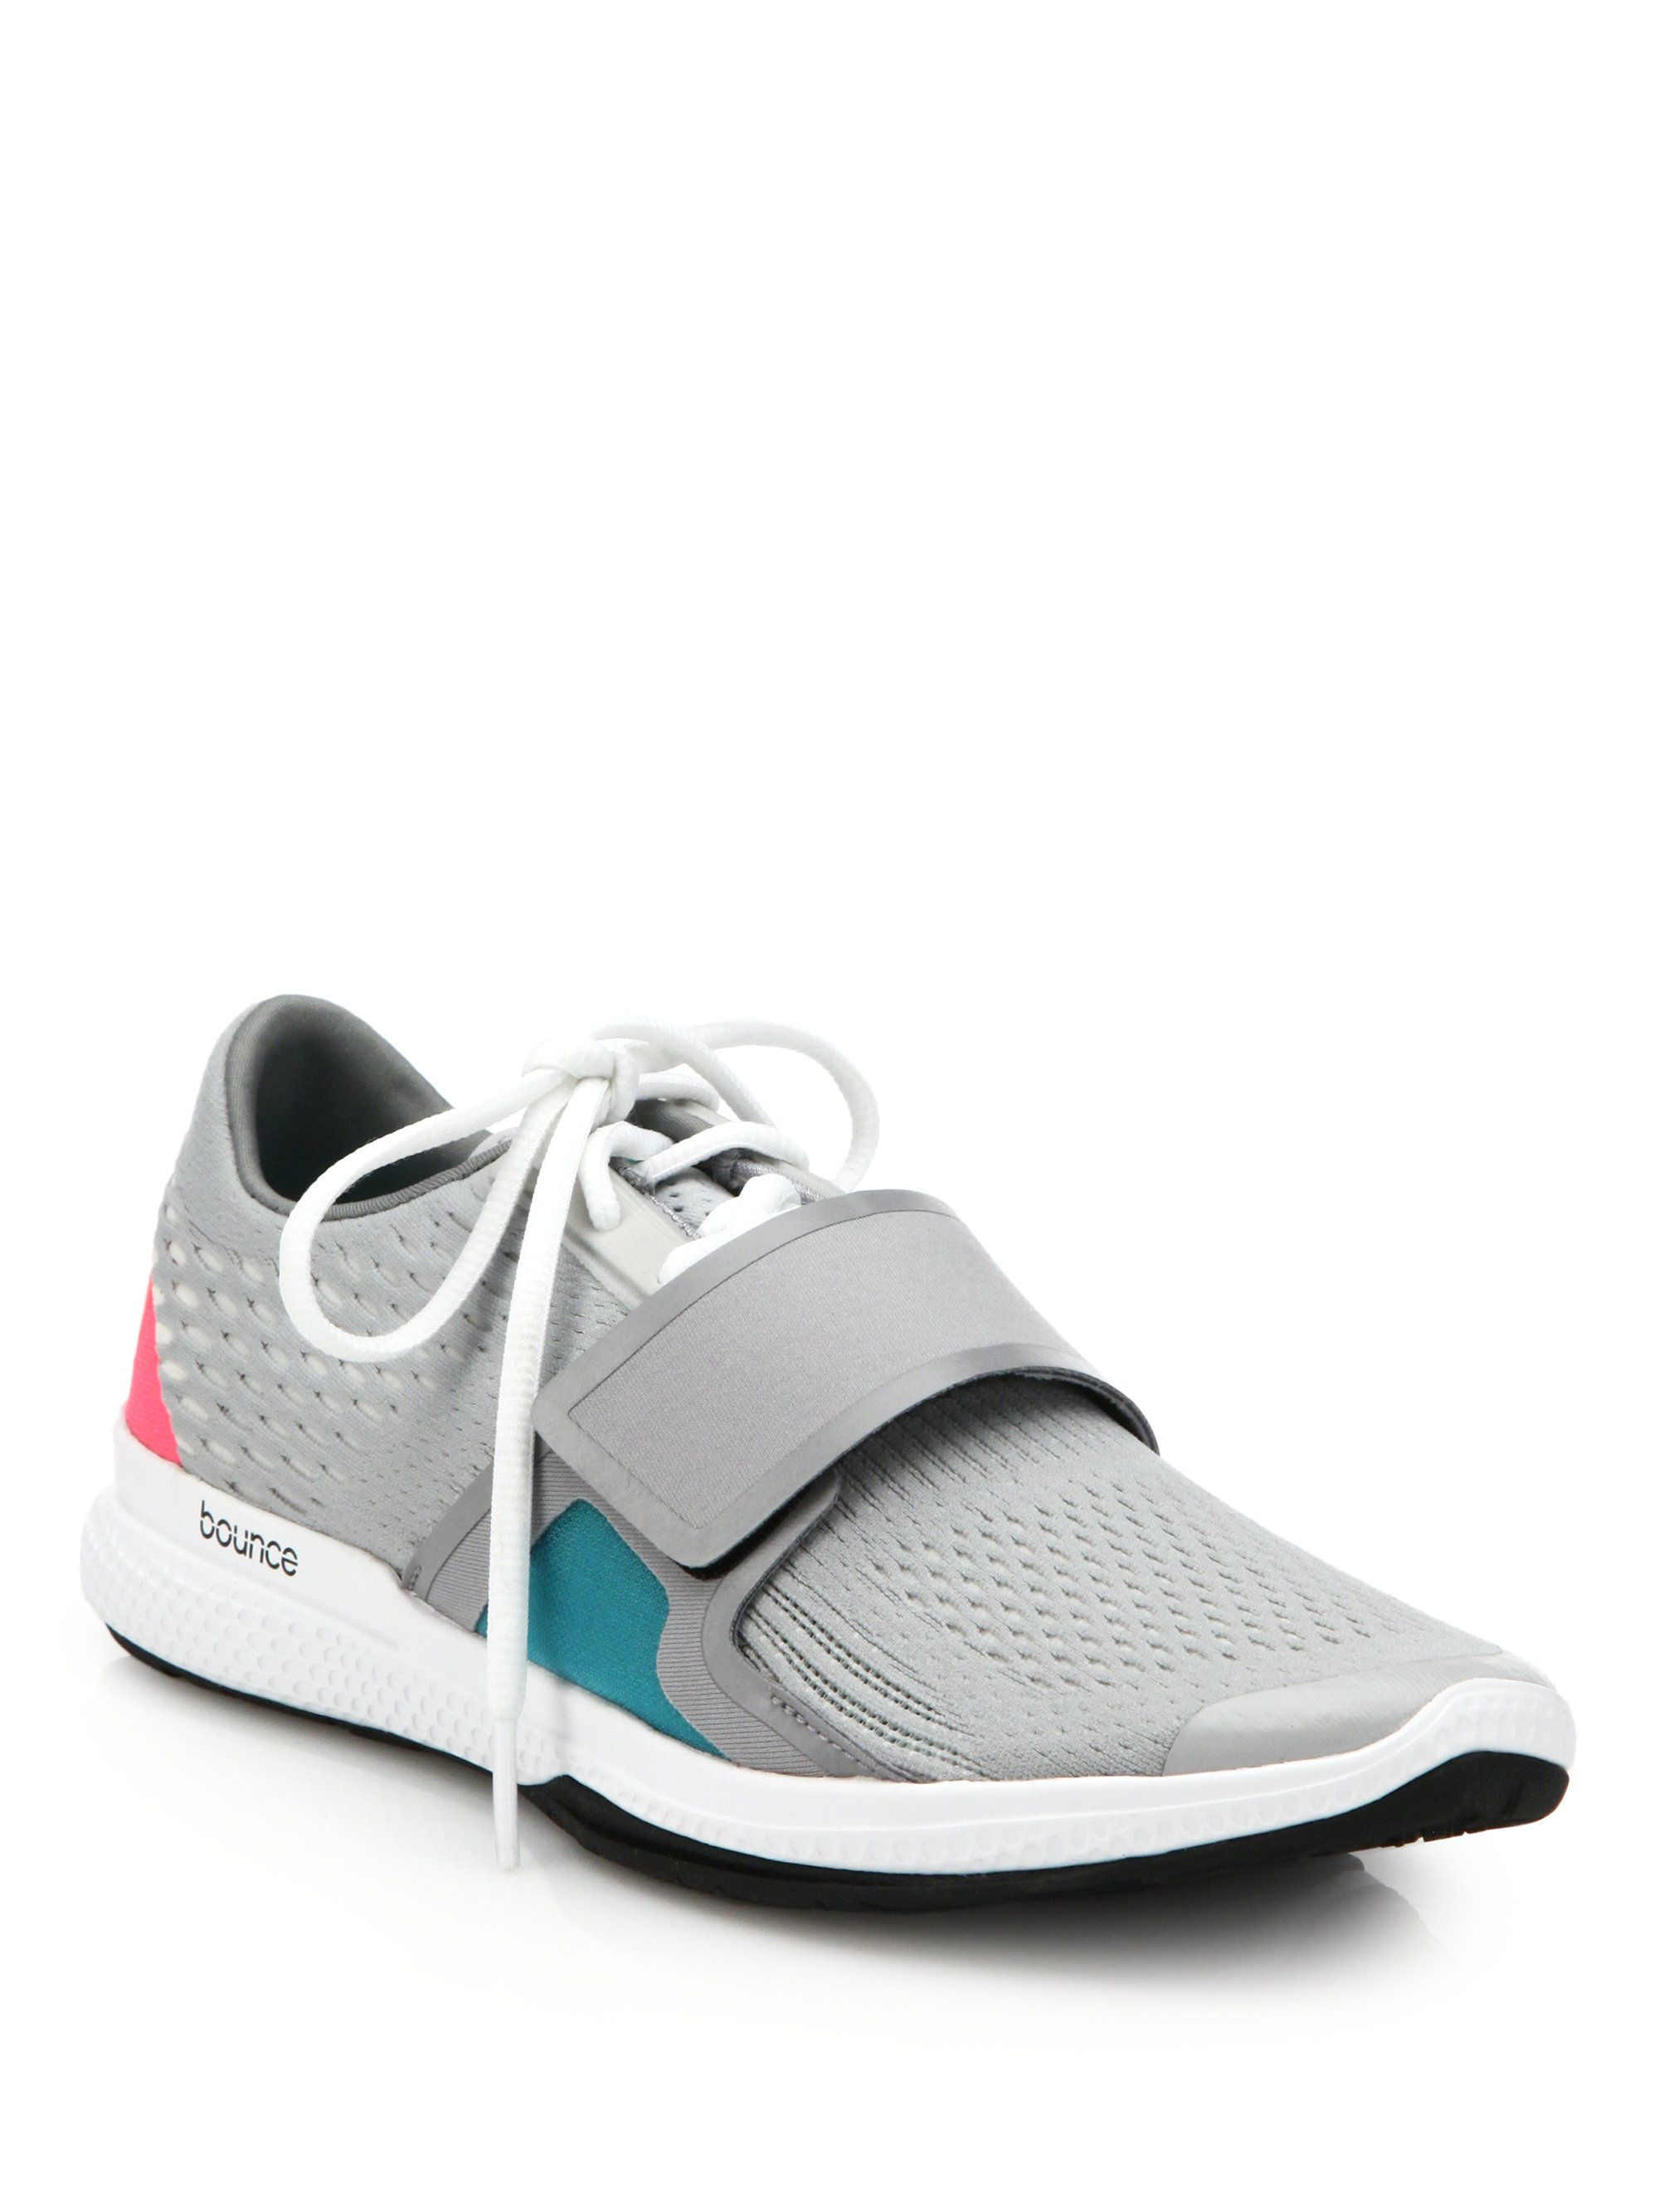 outlet store 4ffb8 44f16 Stella McCartney for Adidas